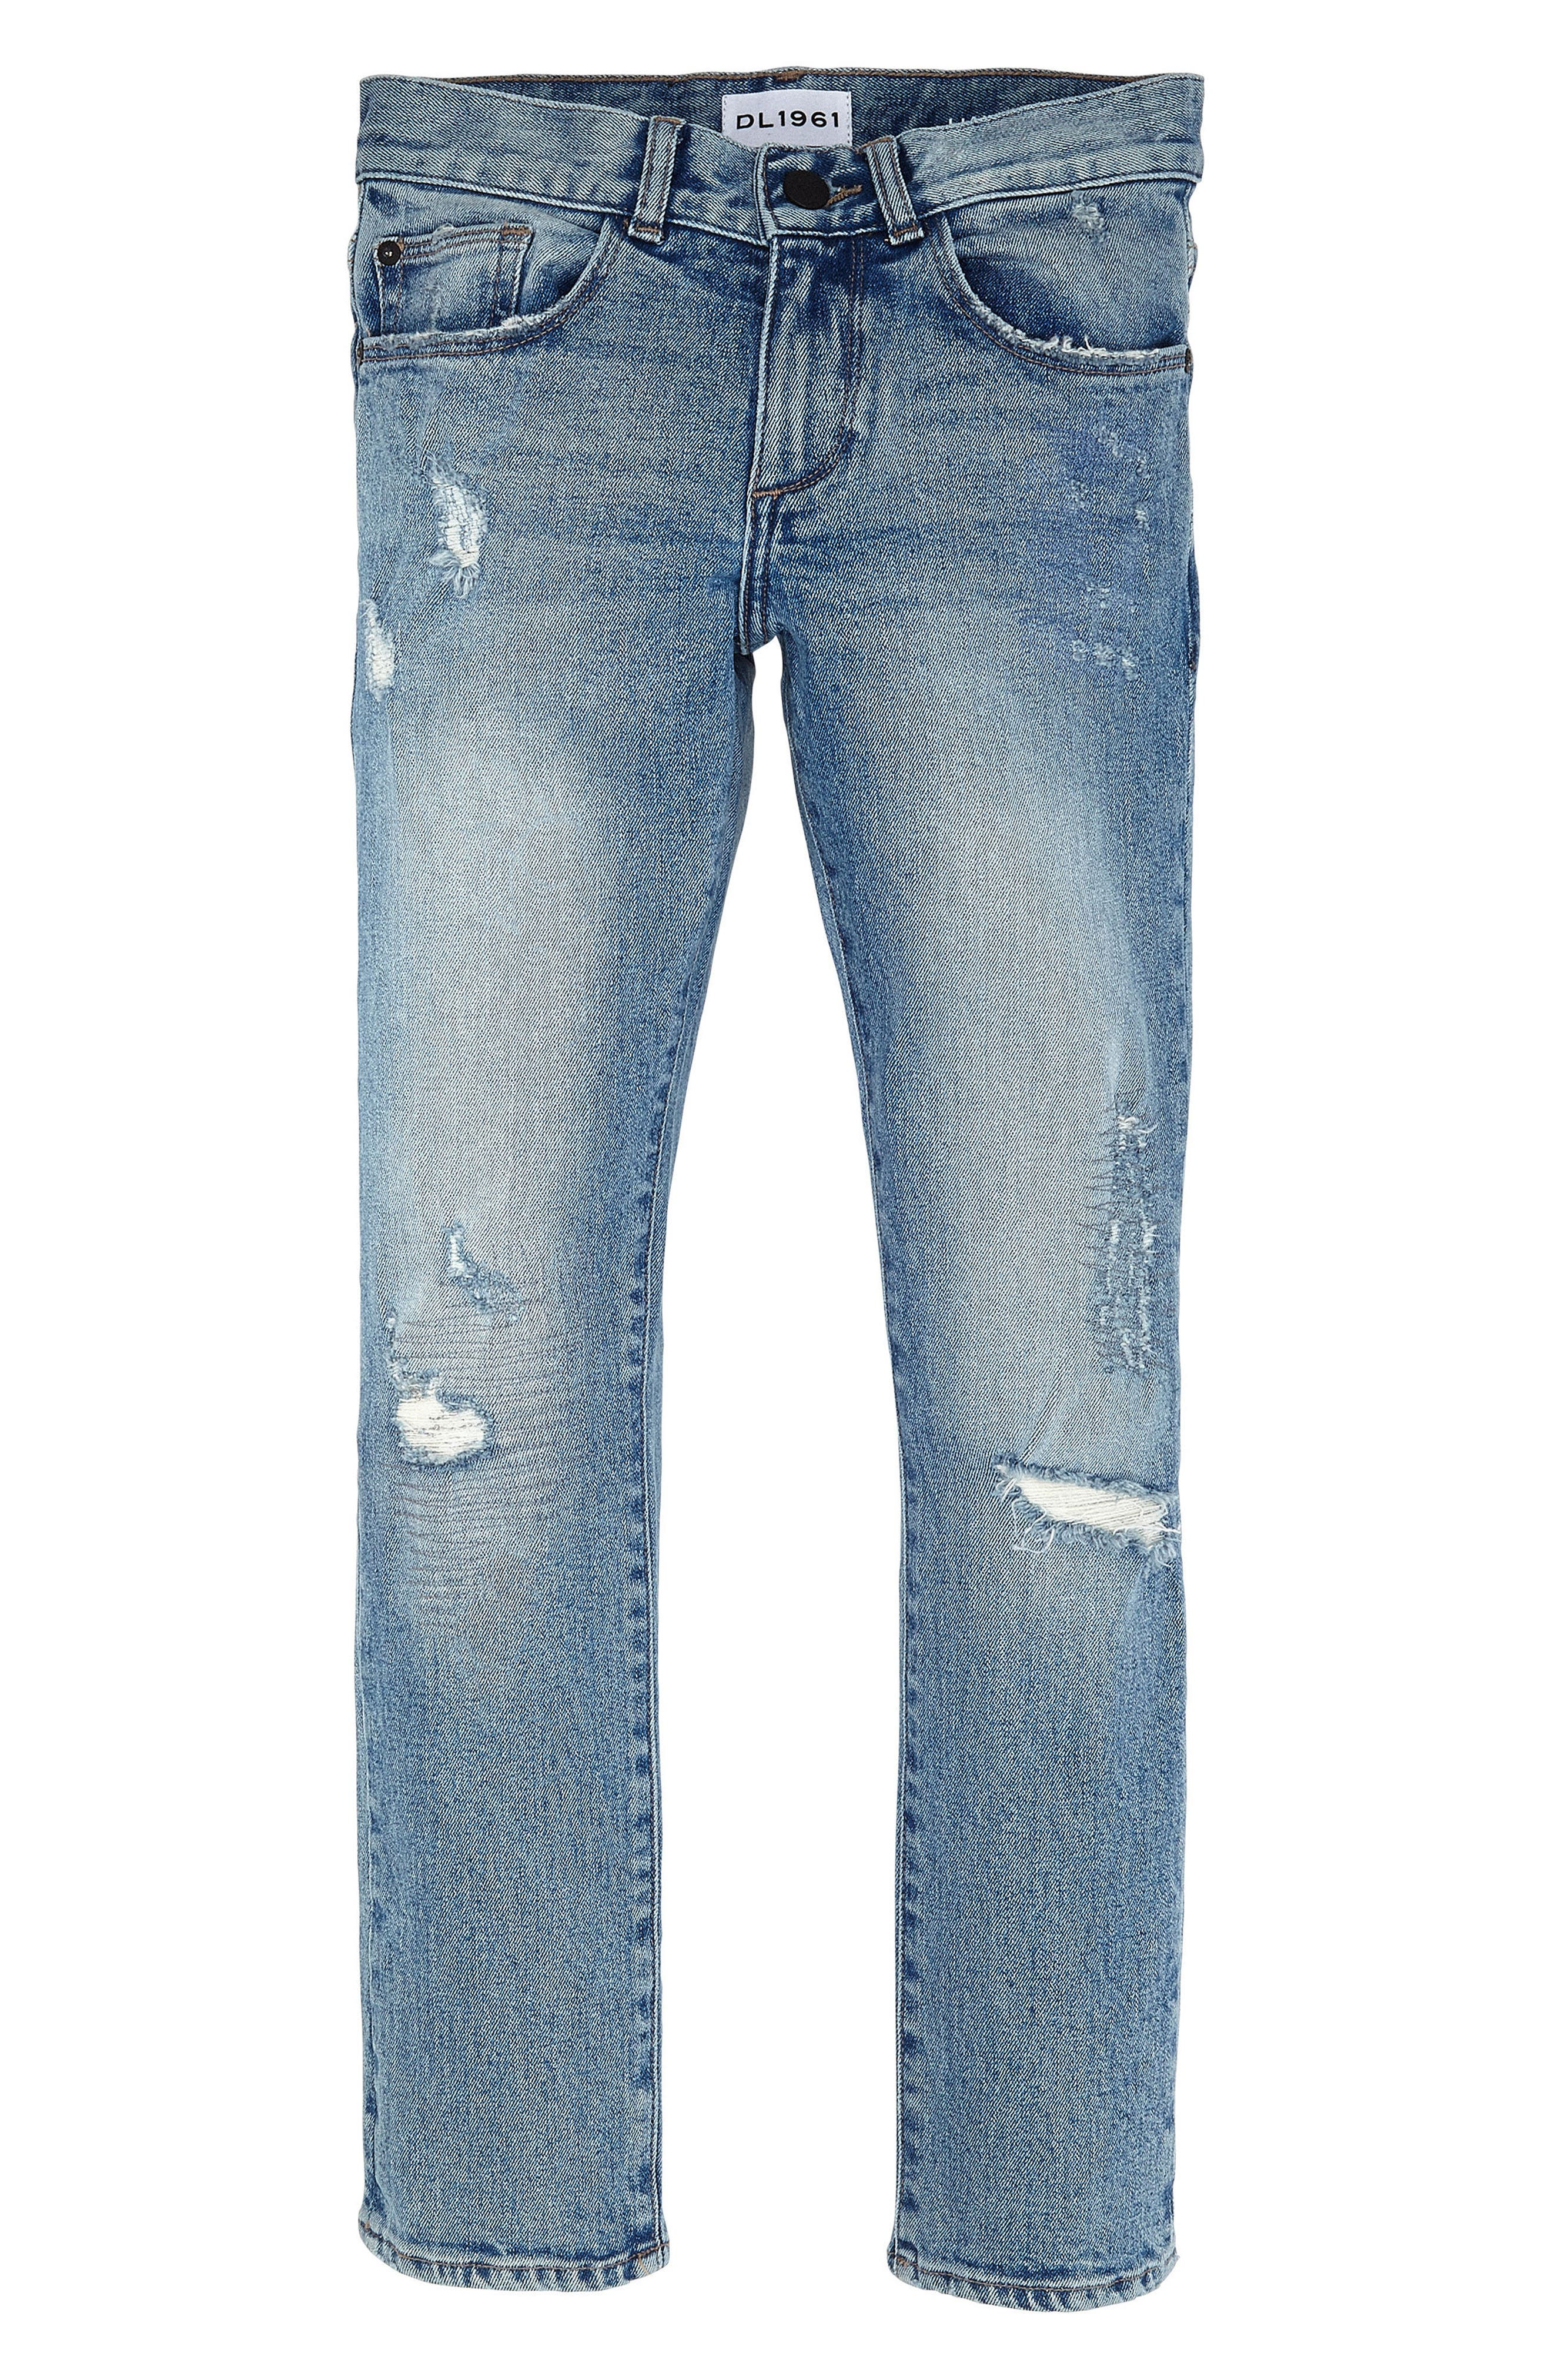 DL1961 Hawke Skinny Fit Rip and Repair Jeans (Toddler Boys & Little Boys)